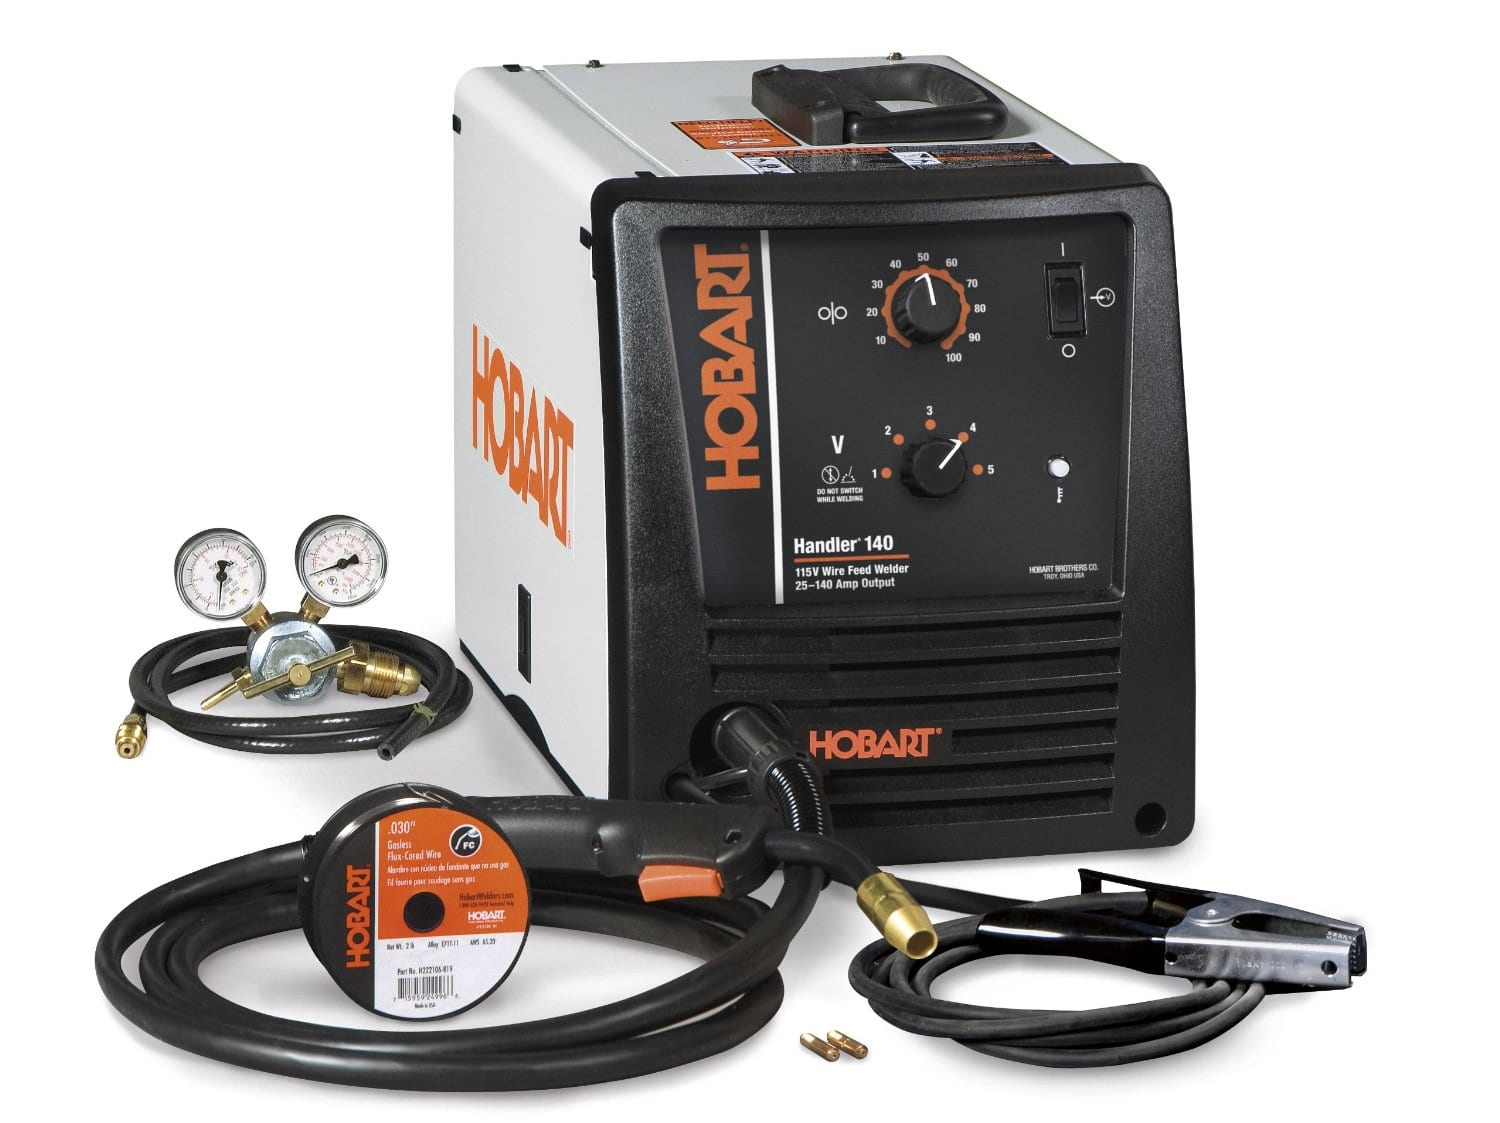 Hobart 500559 Handler Wire Welder - Review